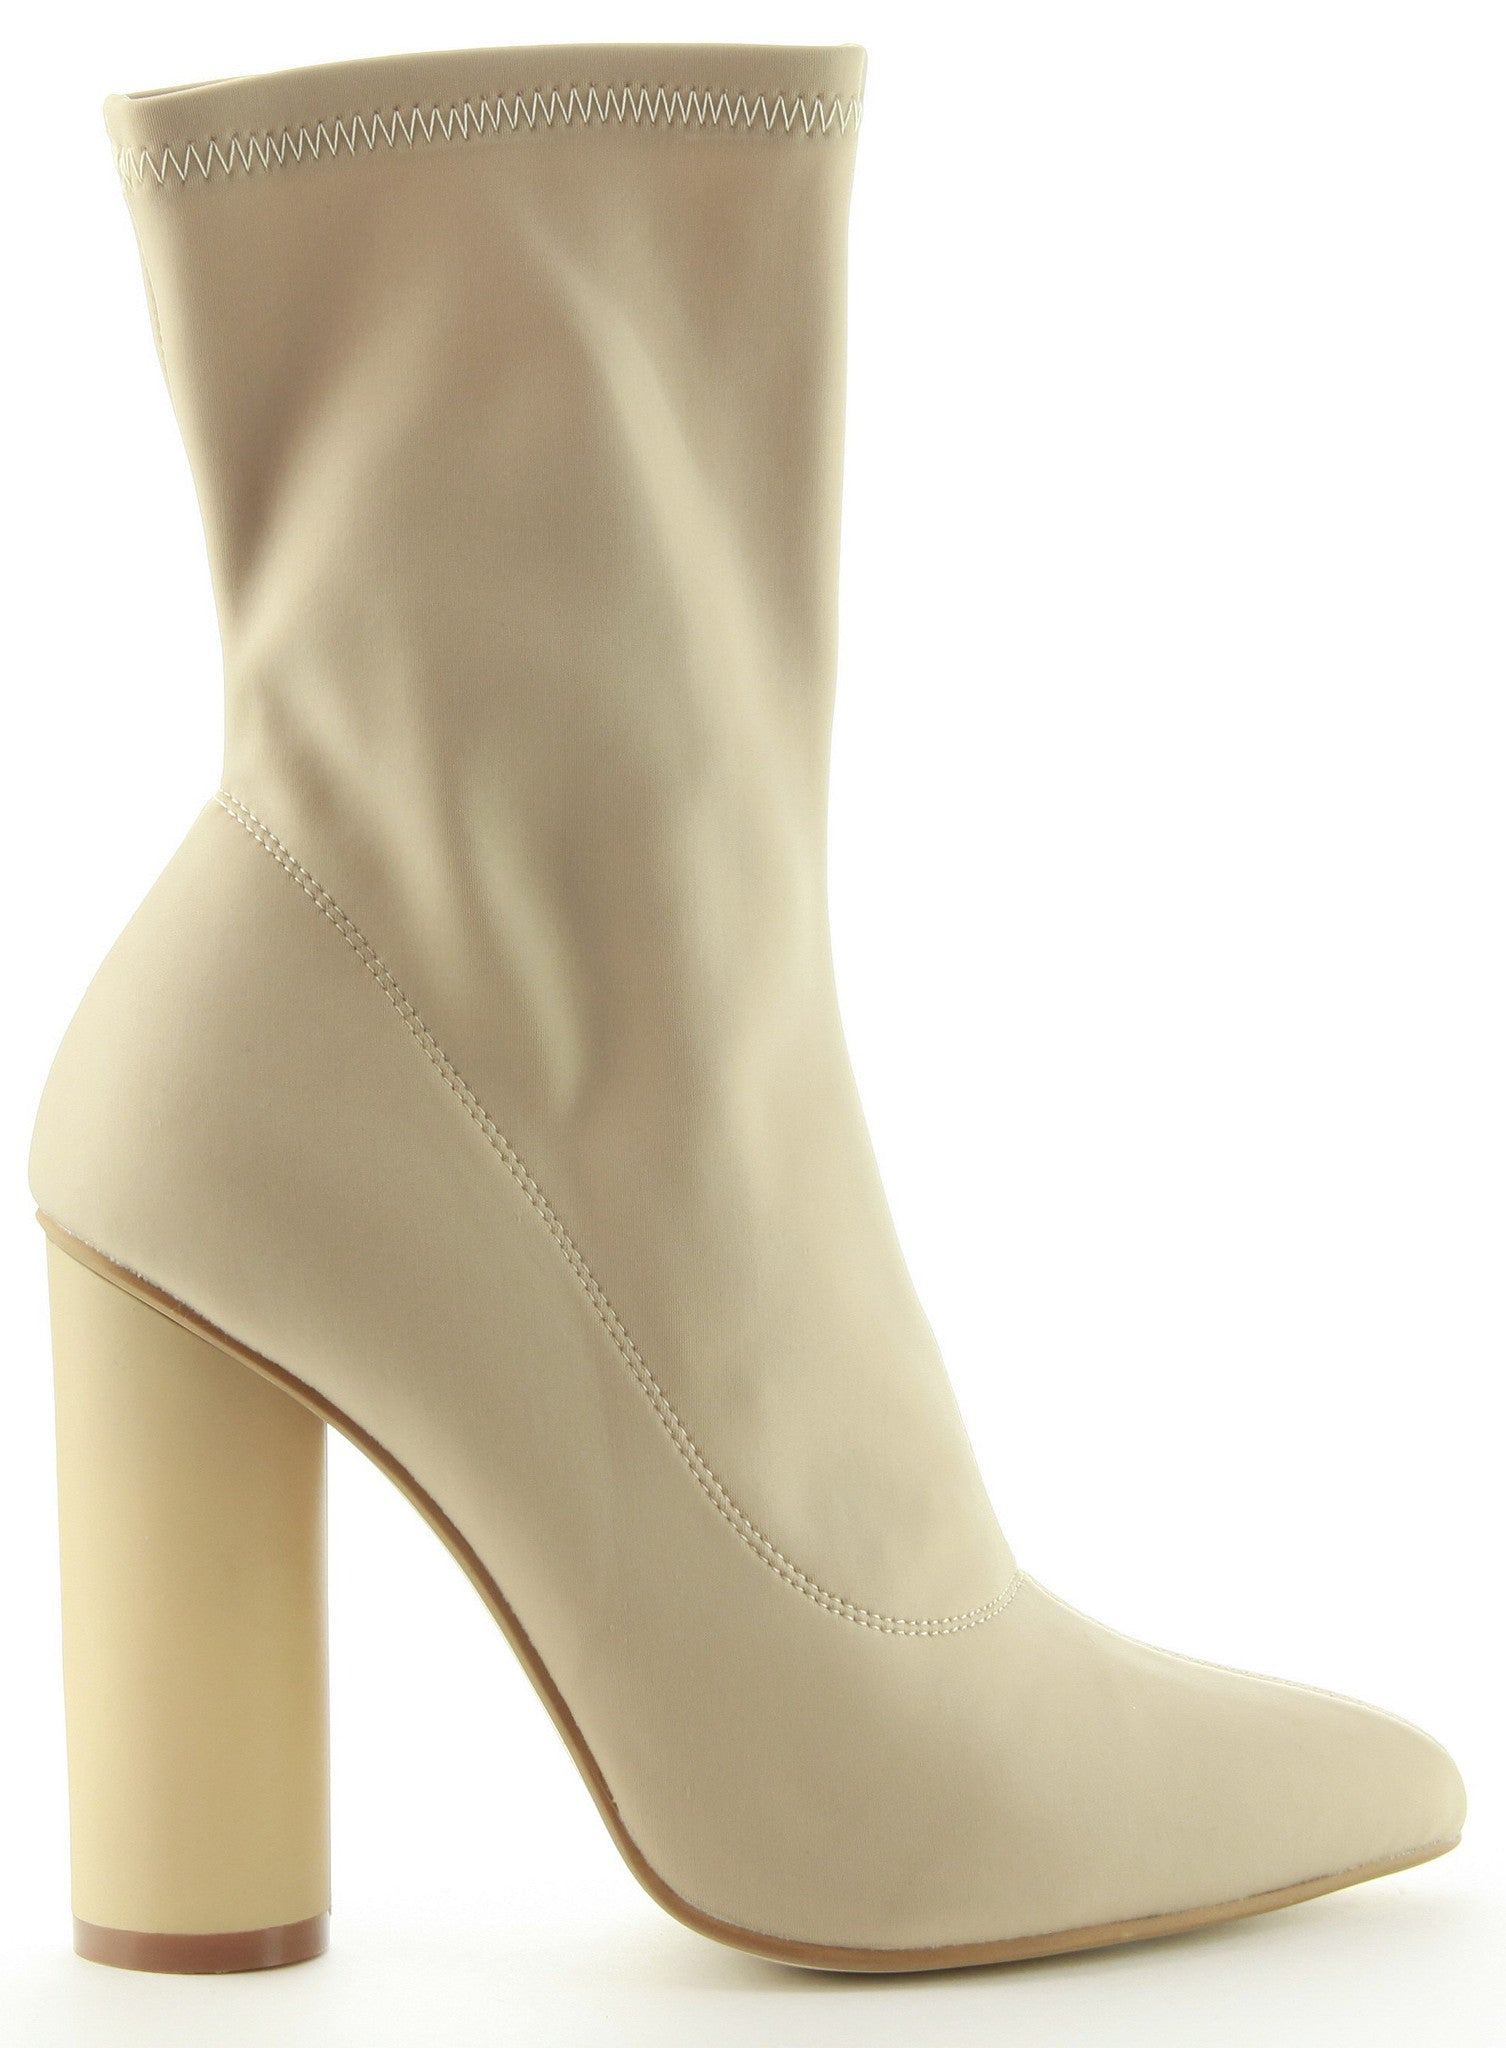 CherryMad Cape Robin Paw-1 Nude Pointy Toe Lycra Elastic Pull On Ankle Bootie Block Round Heel Boot